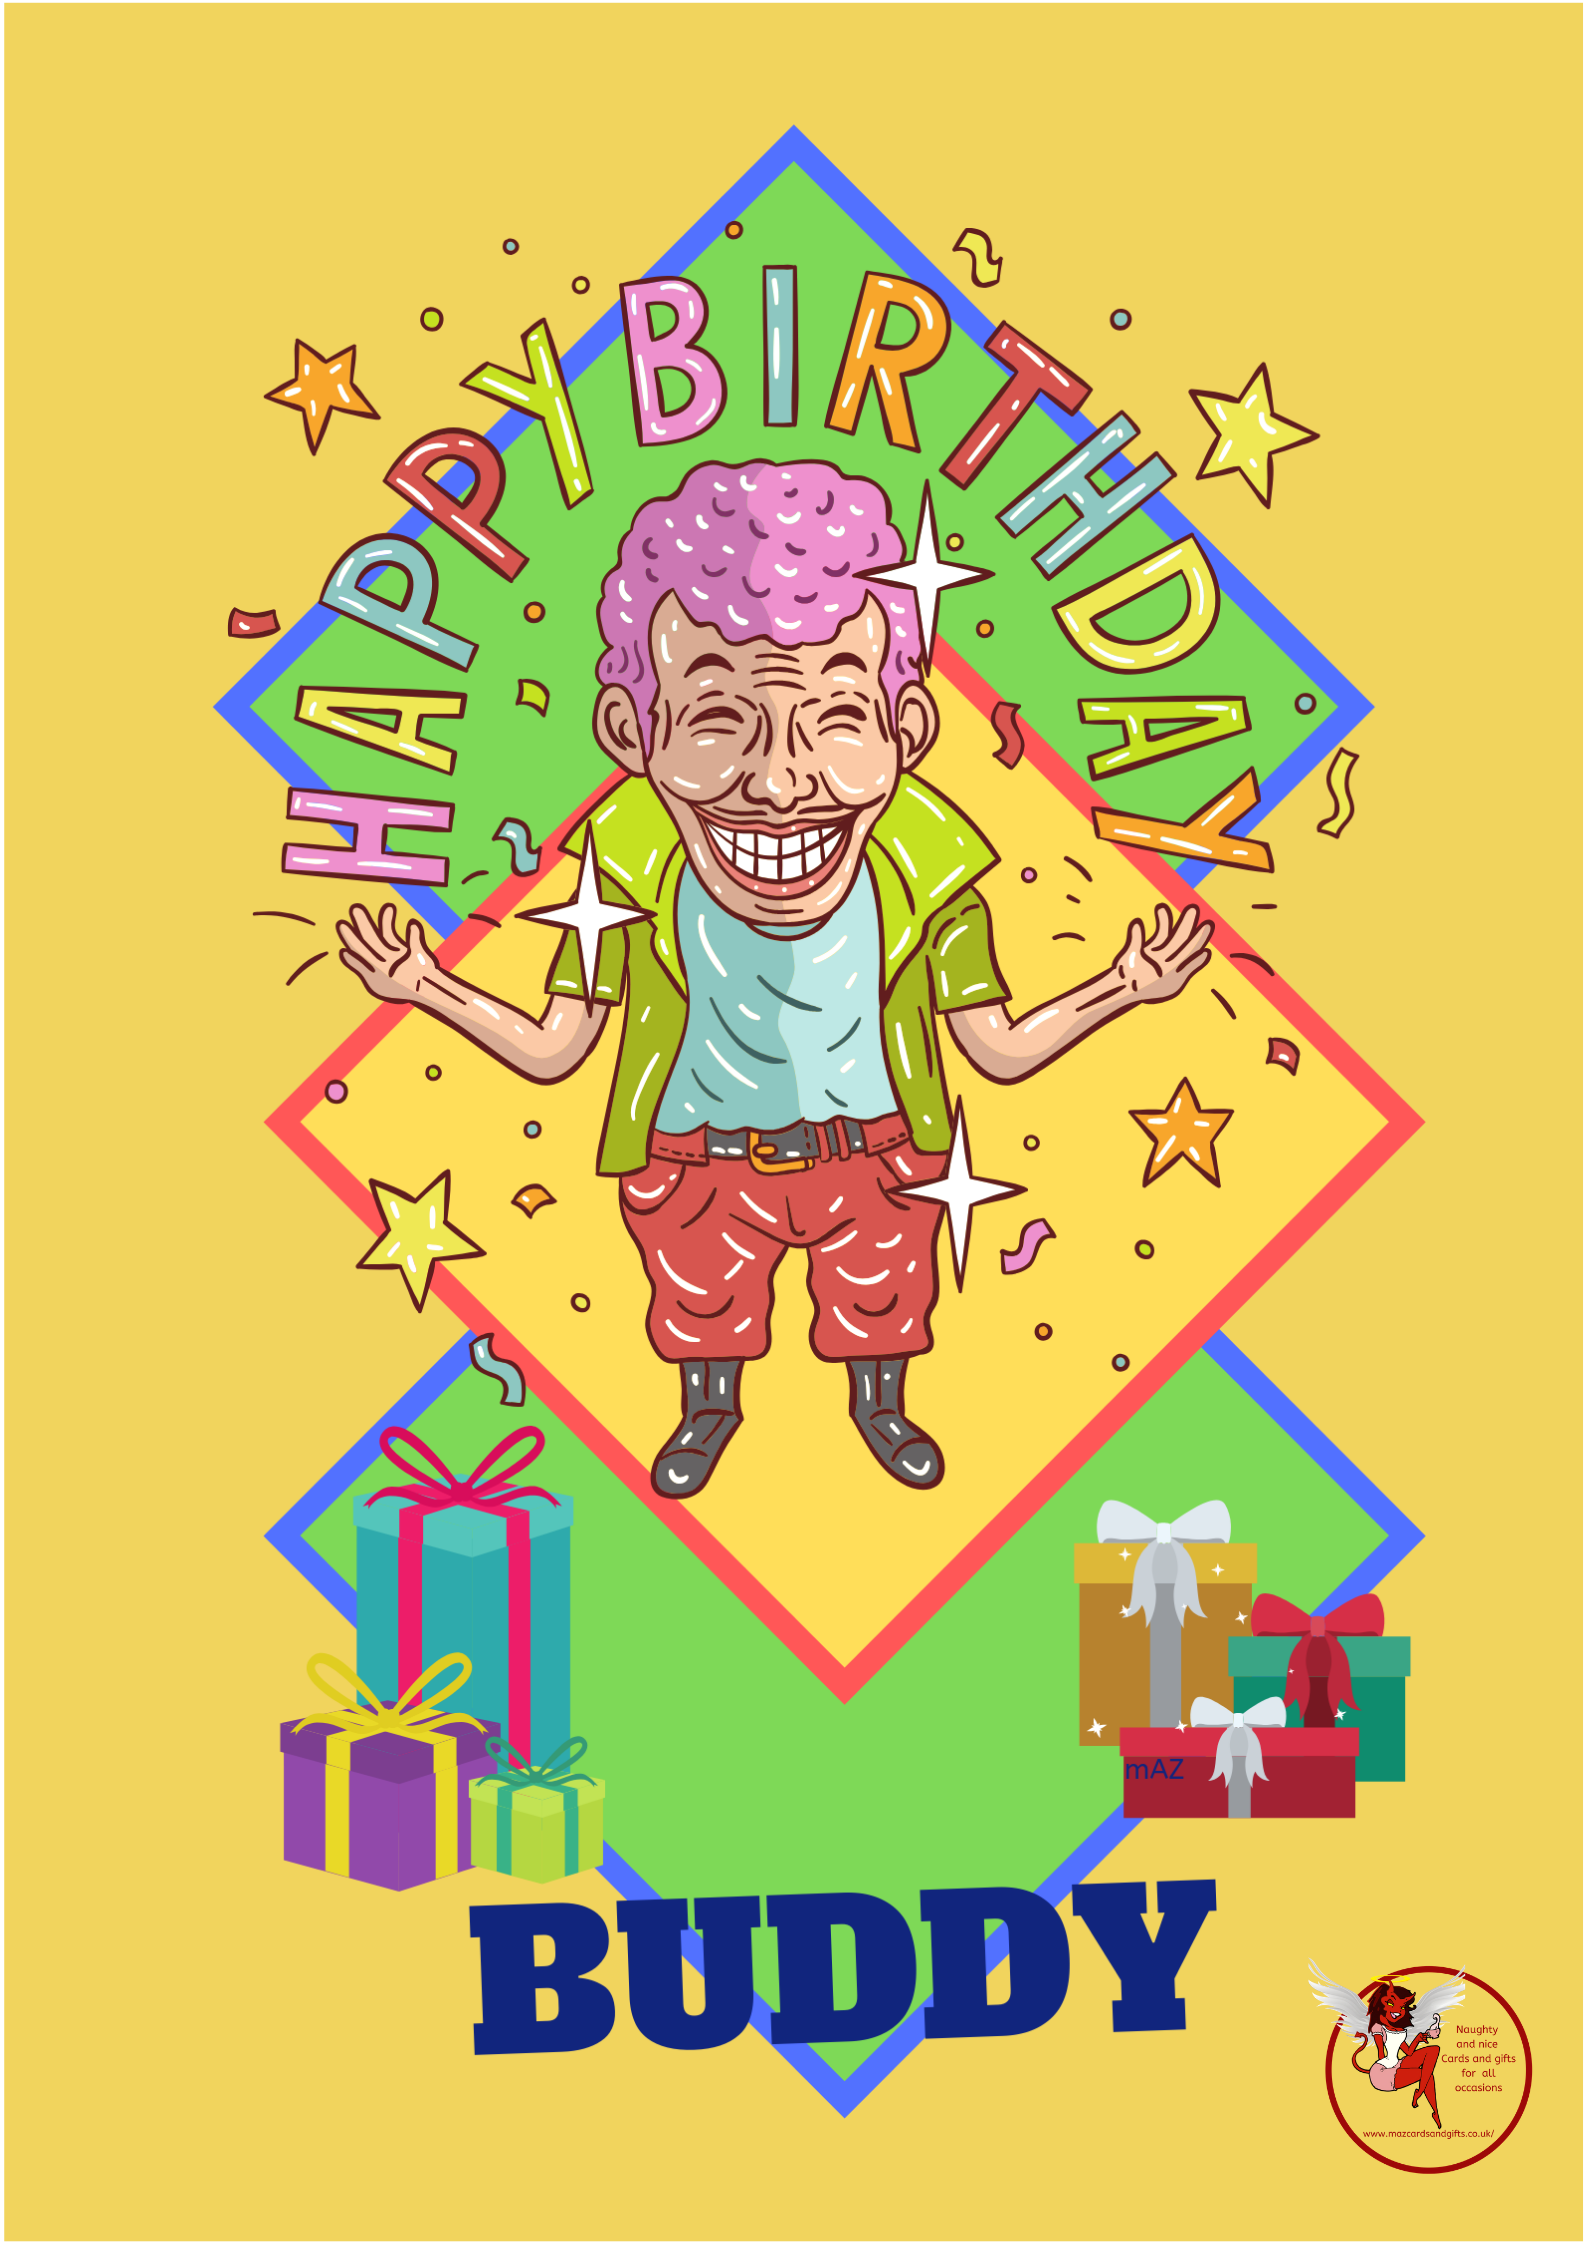 General Birthday - Cartoon - Funny - Birthday Buddy - Order No 081